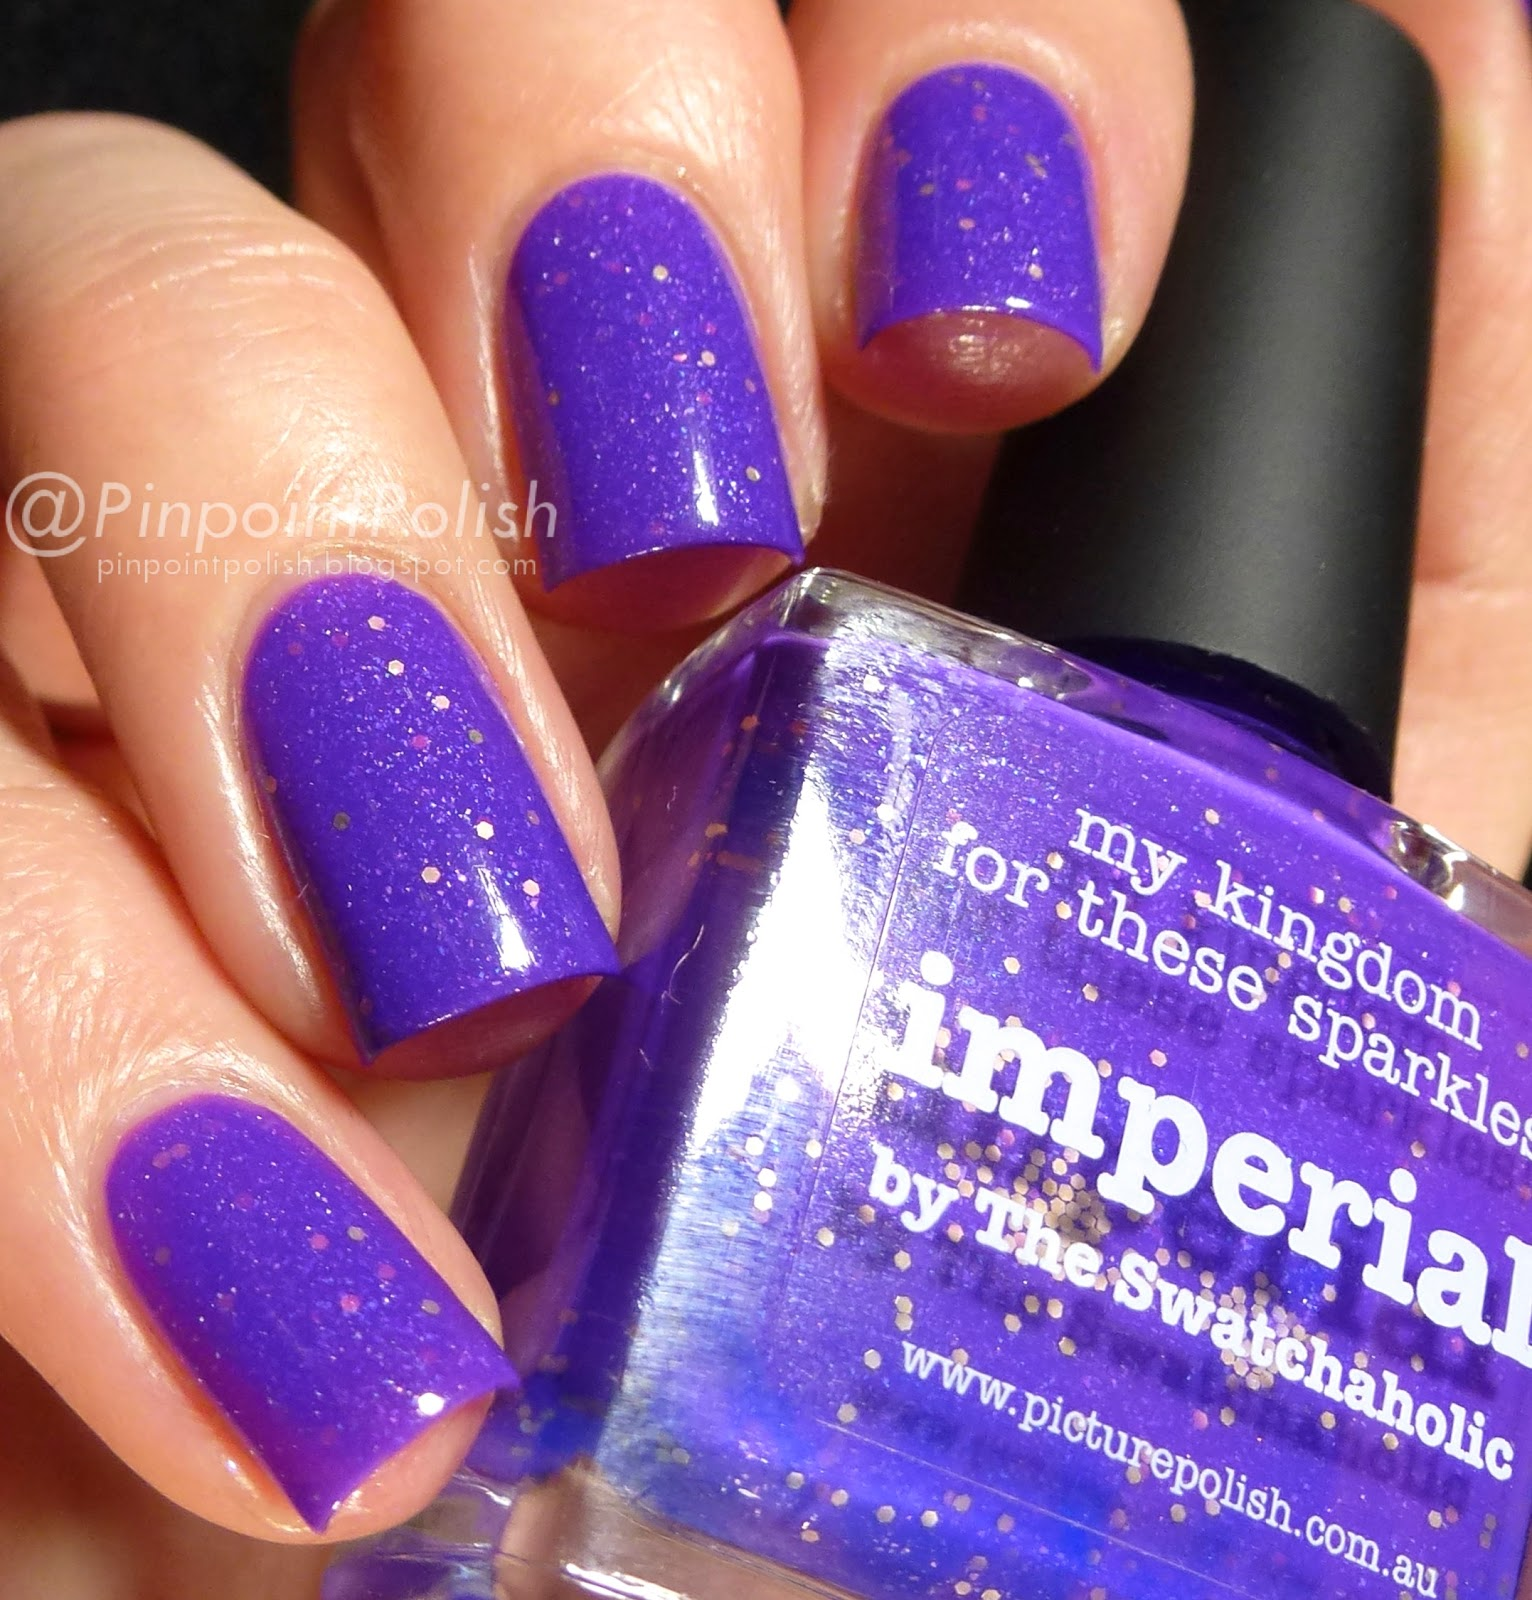 Imperial, picture polish, swatch